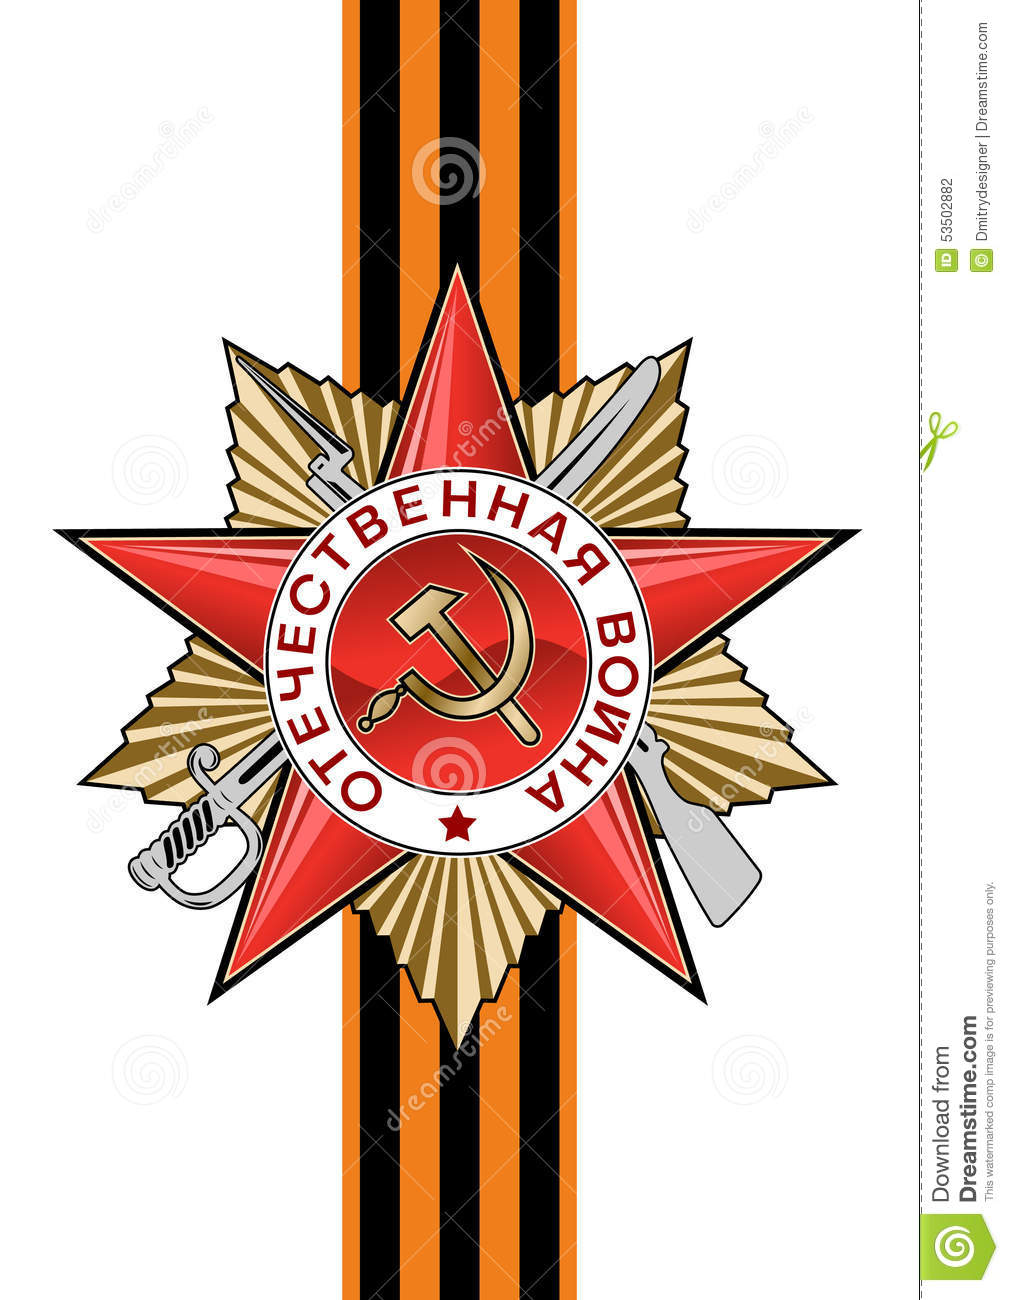 """great patriotic war waru Another american equally wrongly claims that the great patriotic war (which the american wants russians to call """"2nd world war"""" because american does not like the fact that it was russia and russia alone that did what nobody else could – beat, defeat, and destroy utterly nazi germany and it's hordes of satellite-crony-fascist allies."""